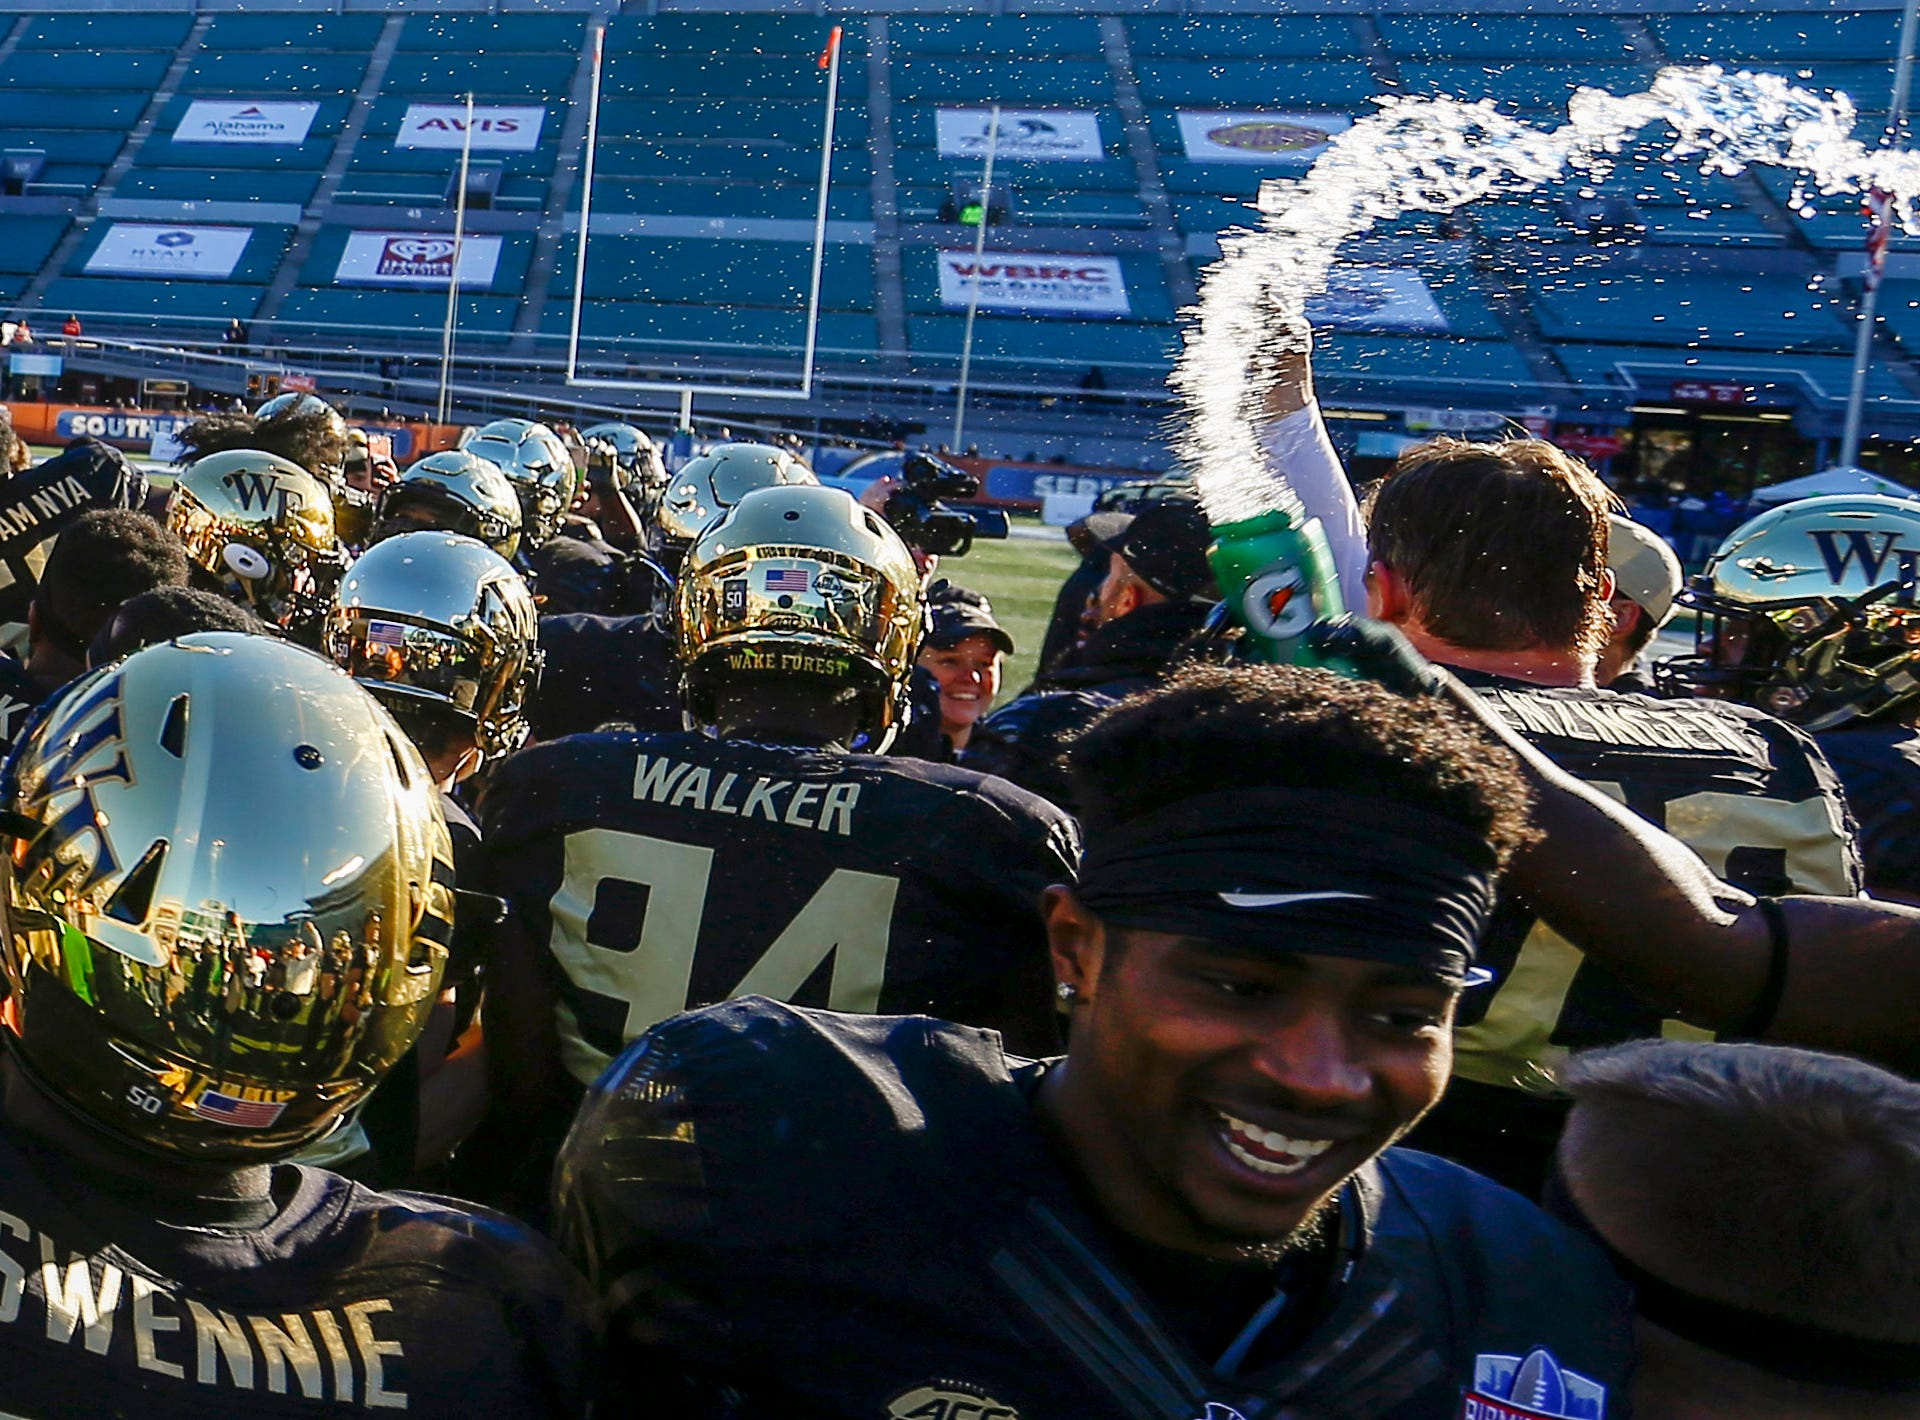 A Wake Forest Demon Deacons player tosses Gatorade in celebration after the win over the Memphis Tigers in the Birmingham Bowl.